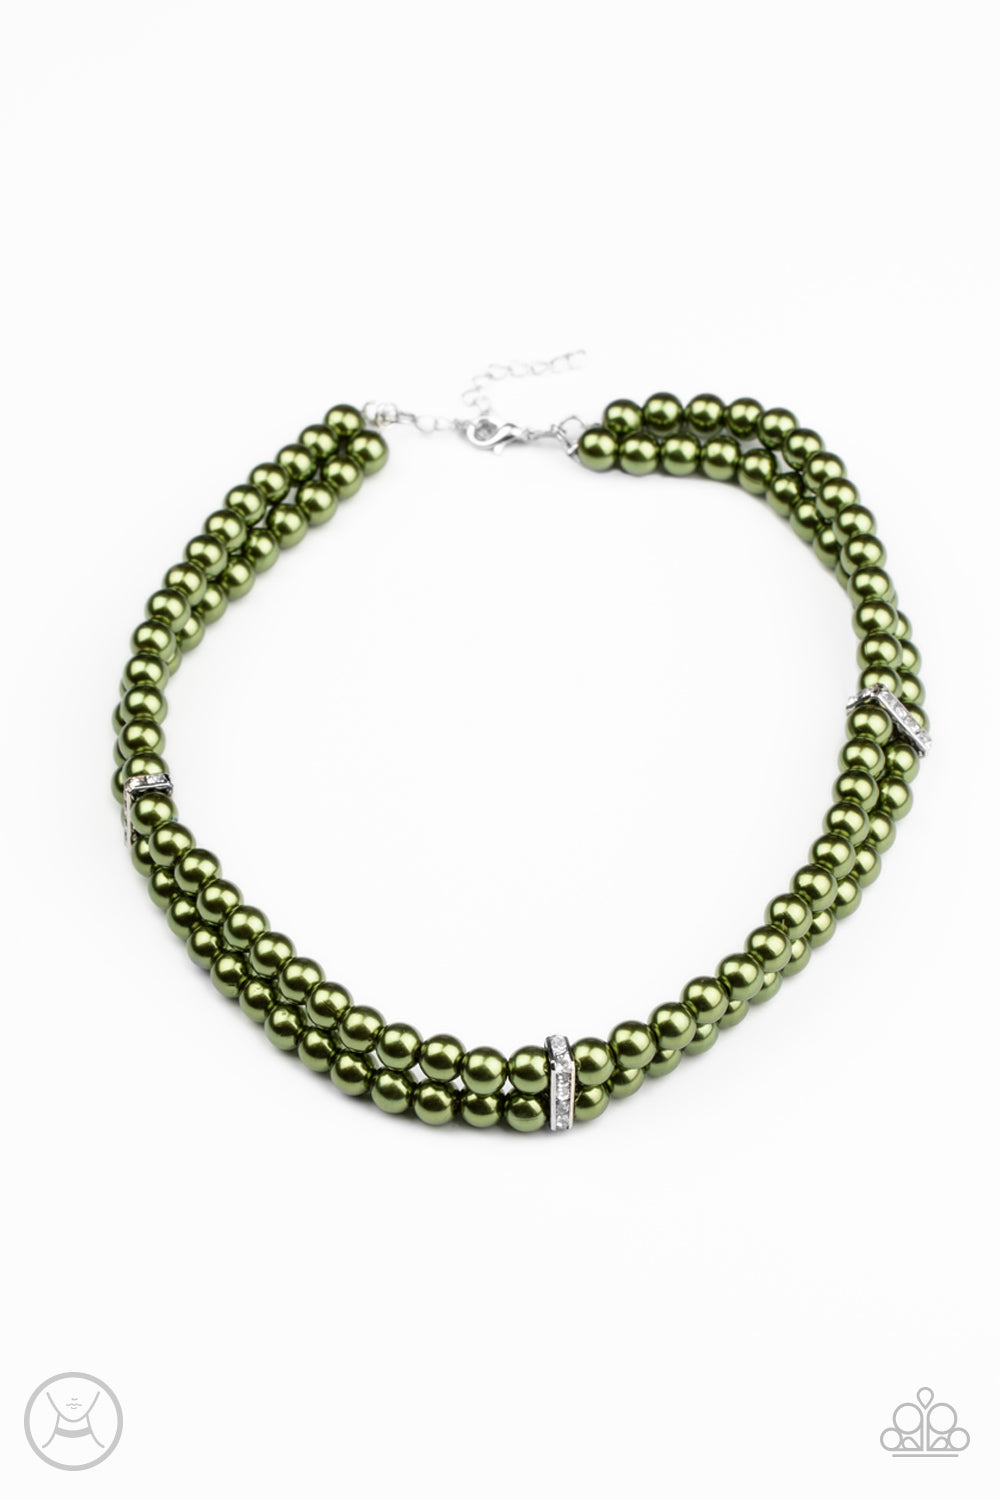 Put On Your Party Dress Green Necklace